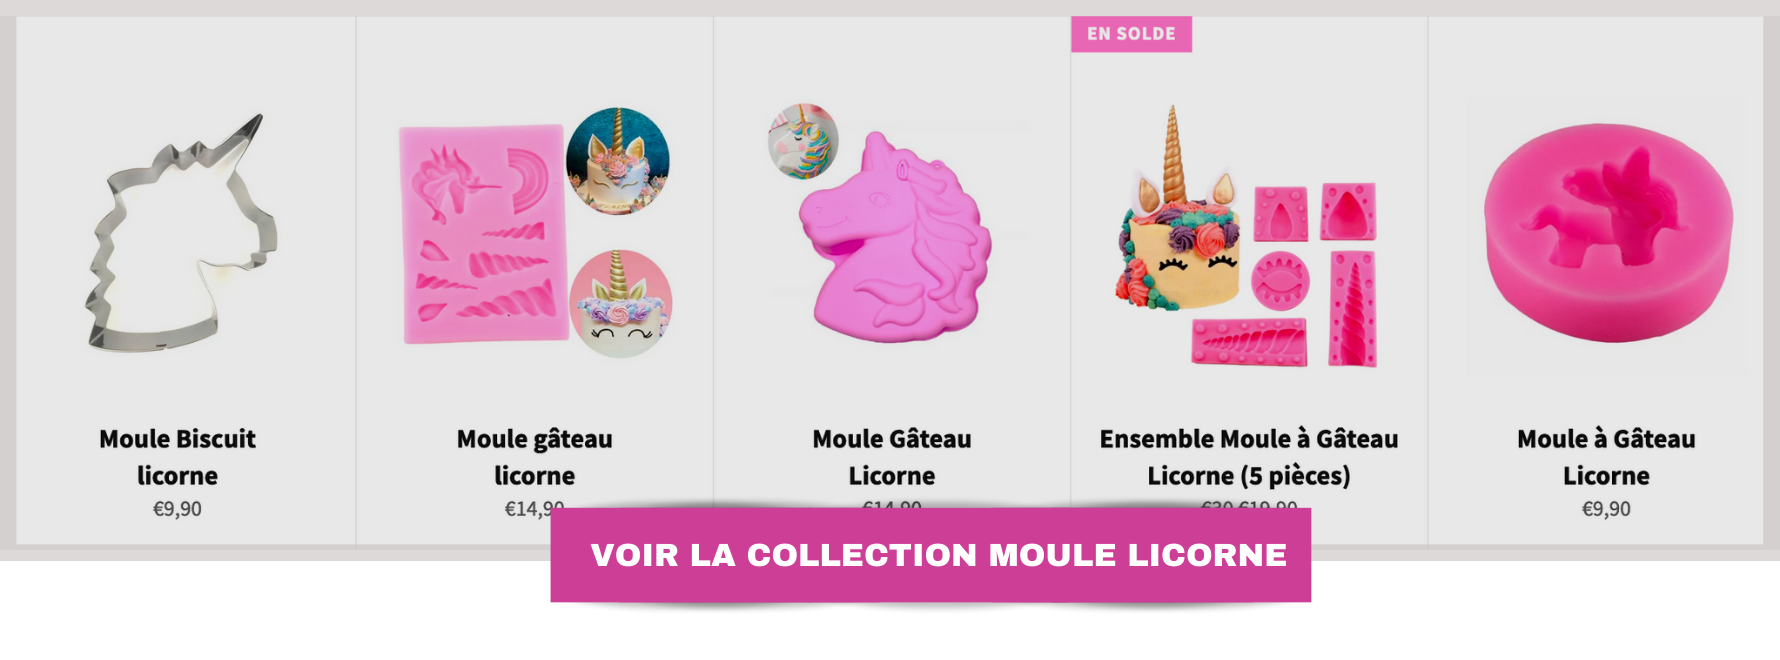 moule_licorne_collection